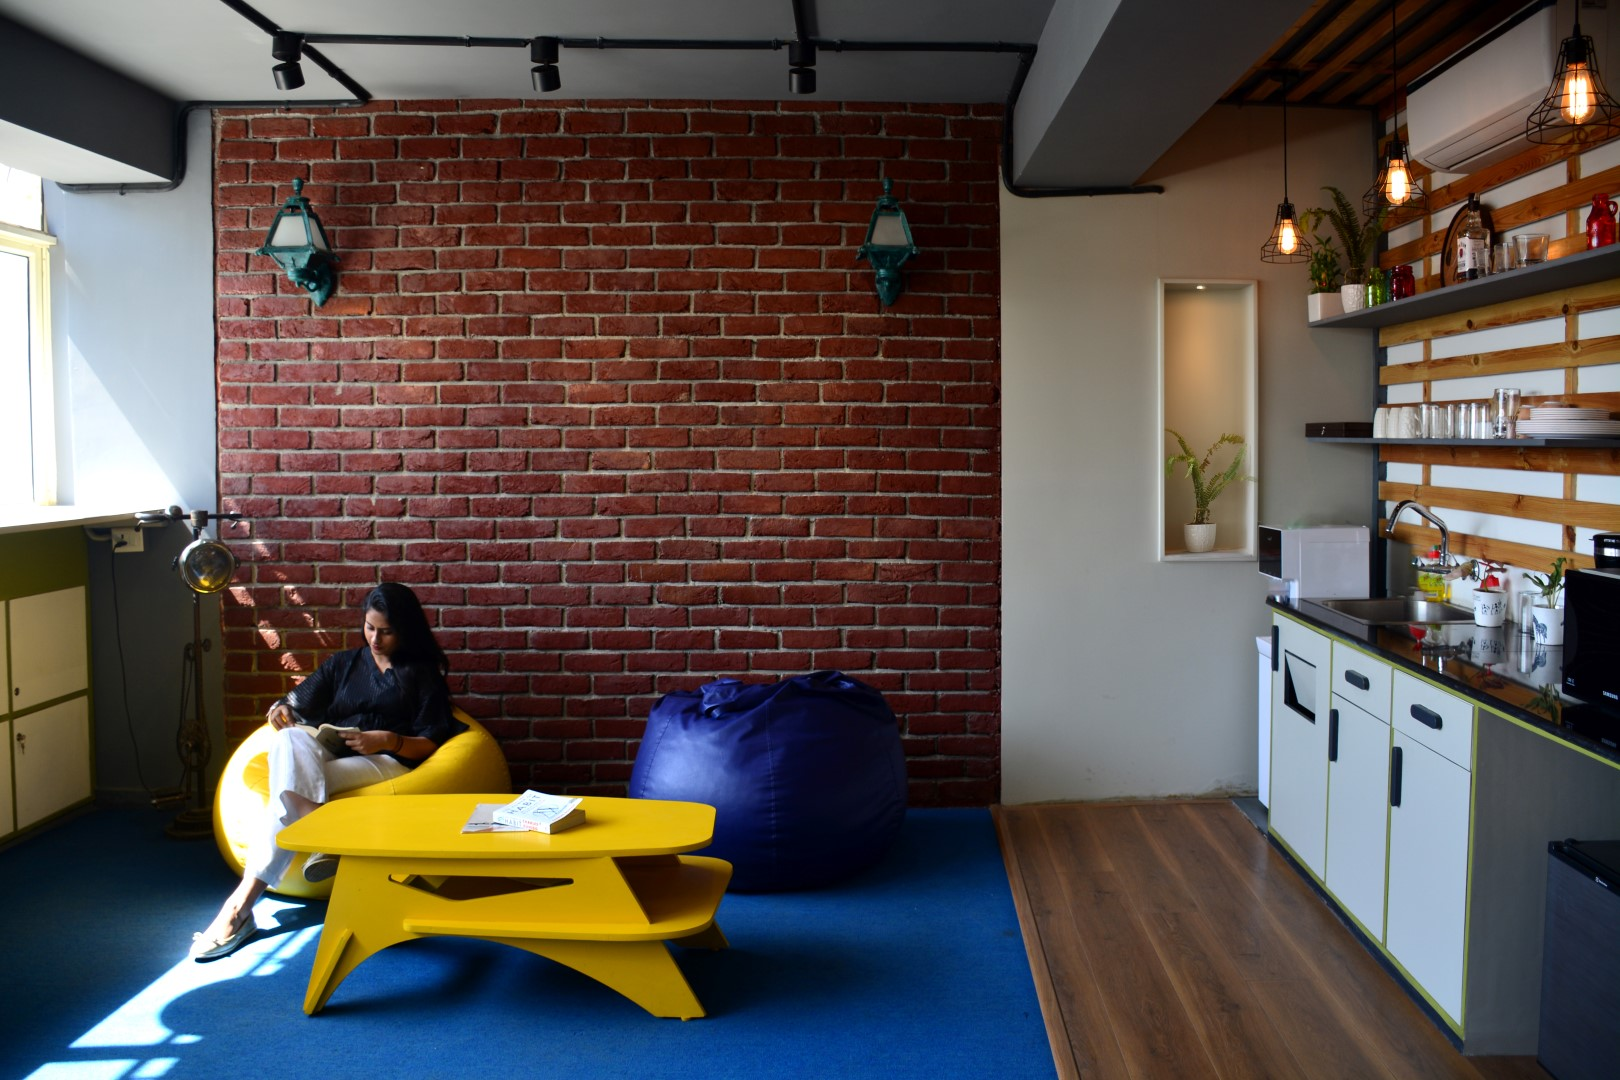 Adding Brick Wall Interior 10 Open Pantry And Breakout Space With Exposed Brick Wall As A